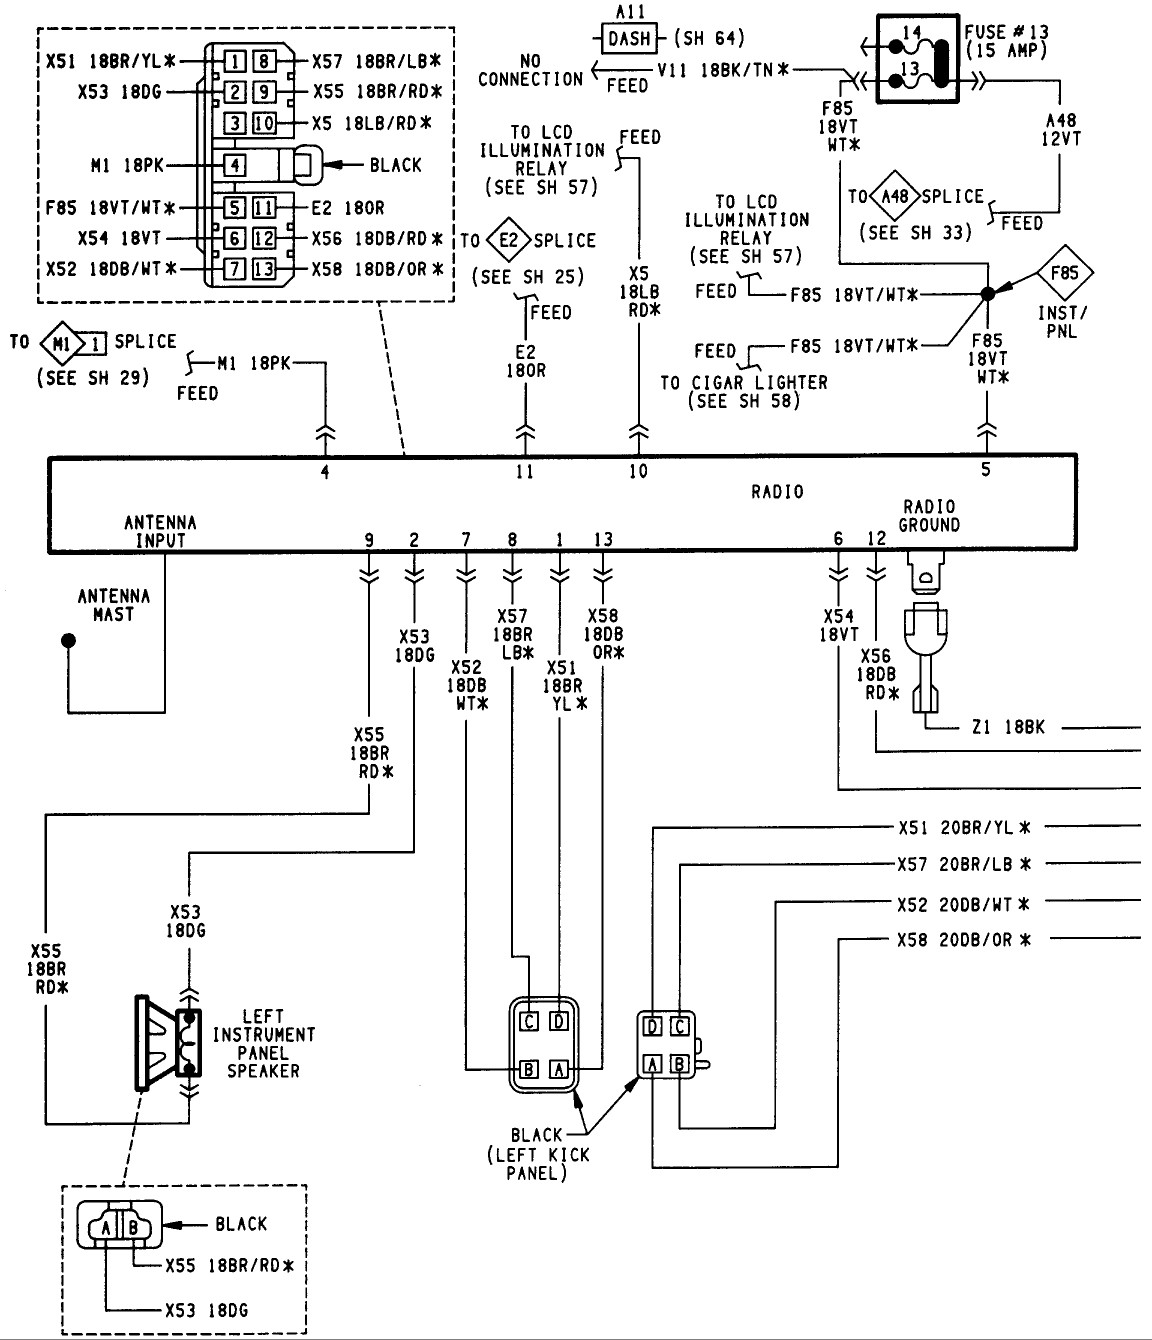 DIAGRAM] 2008 Jeep Liberty Radio Wiring Diagram FULL Version HD Quality Wiring  Diagram - FOODDIAGRAMS.PERSEPHONEIAME.FRAme